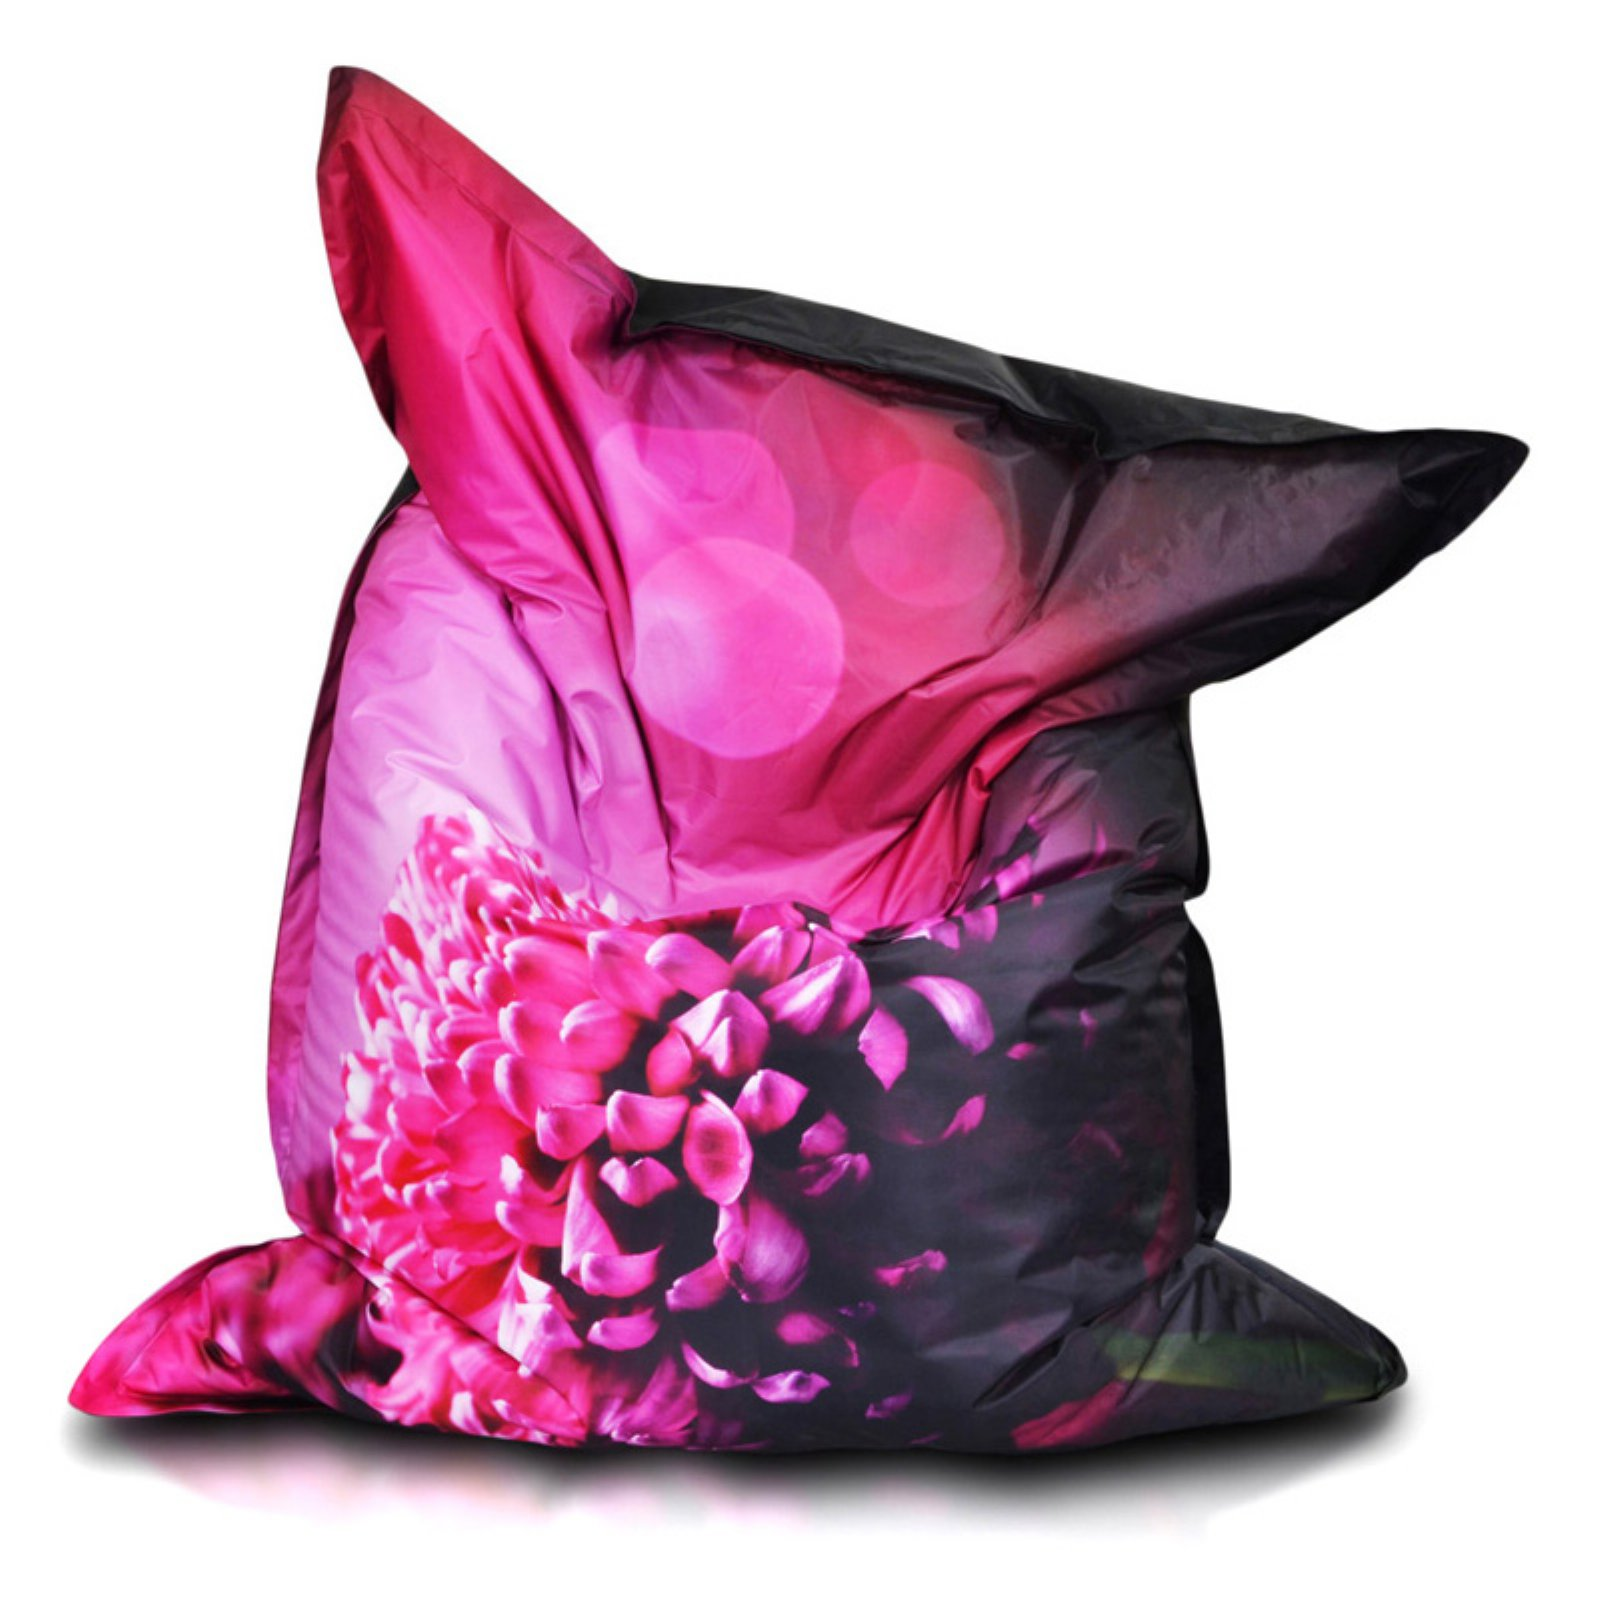 Turbo Beanbags Pillow Style Premium Large Bean Bag Chair - Pink Print